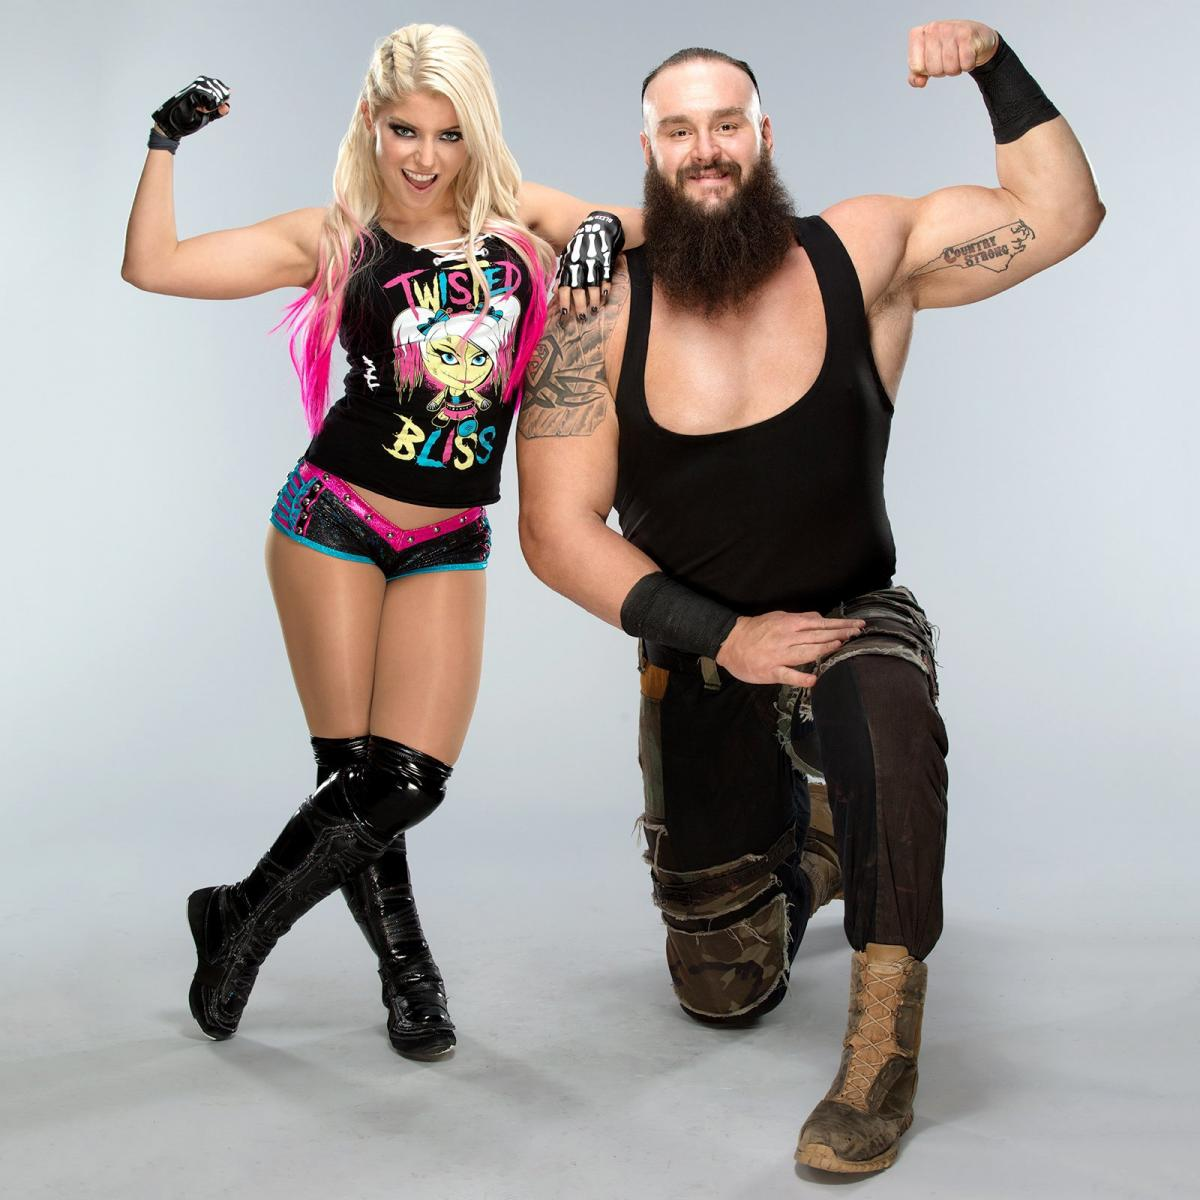 Braun strowman alexa bliss event history pro wrestling for 16 wrestlers and their huge homes